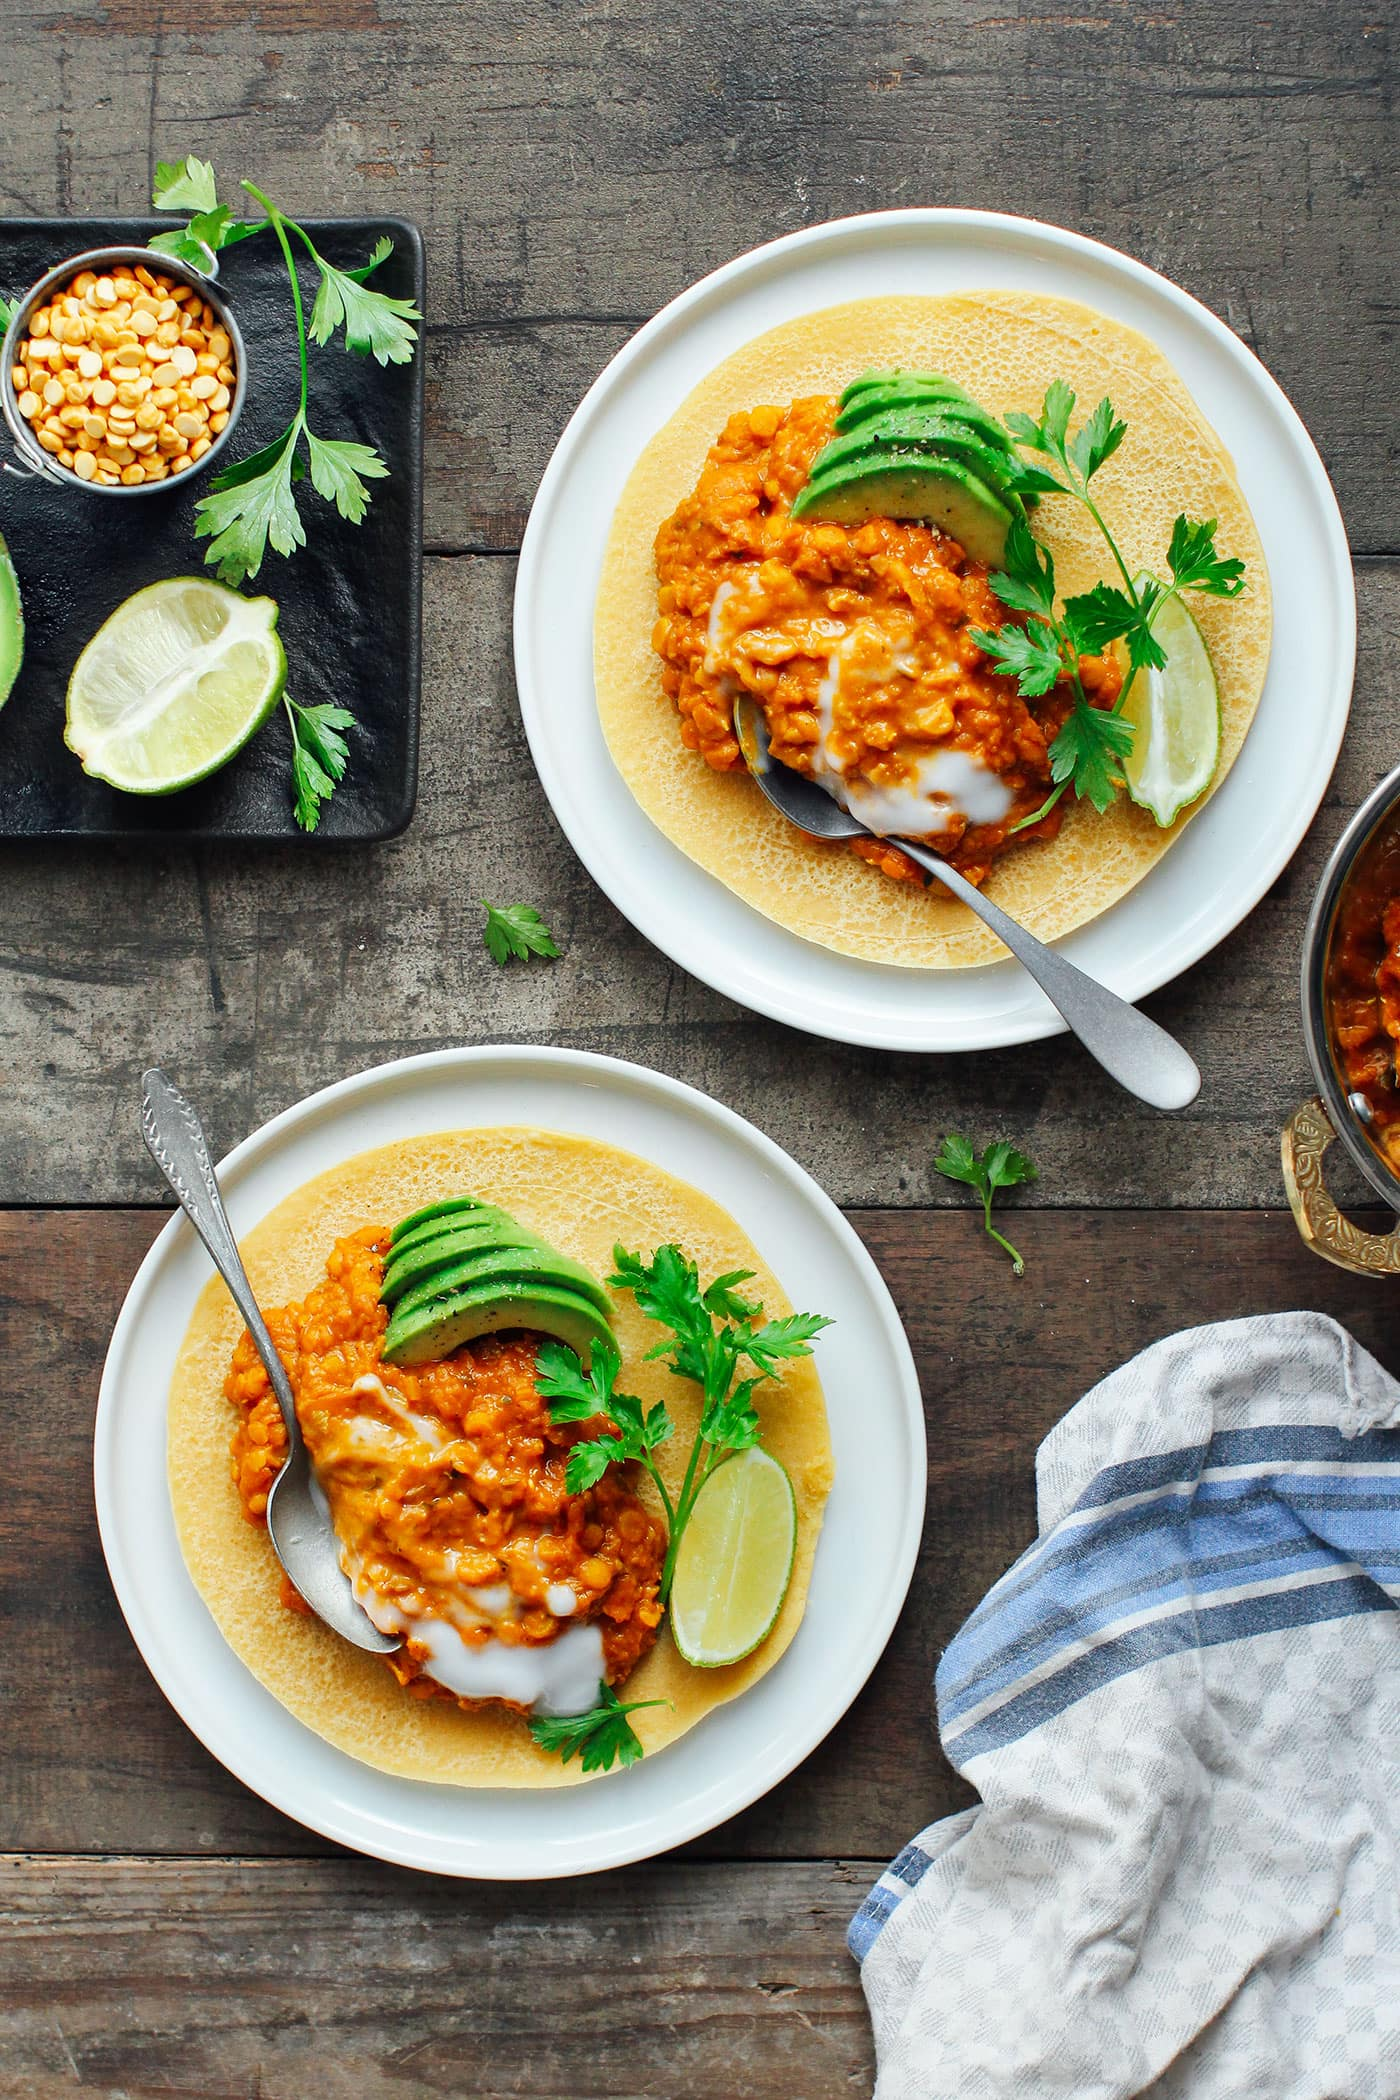 Chickpea Crepes with Creamy Lentil Dal (Vegan + GF!)